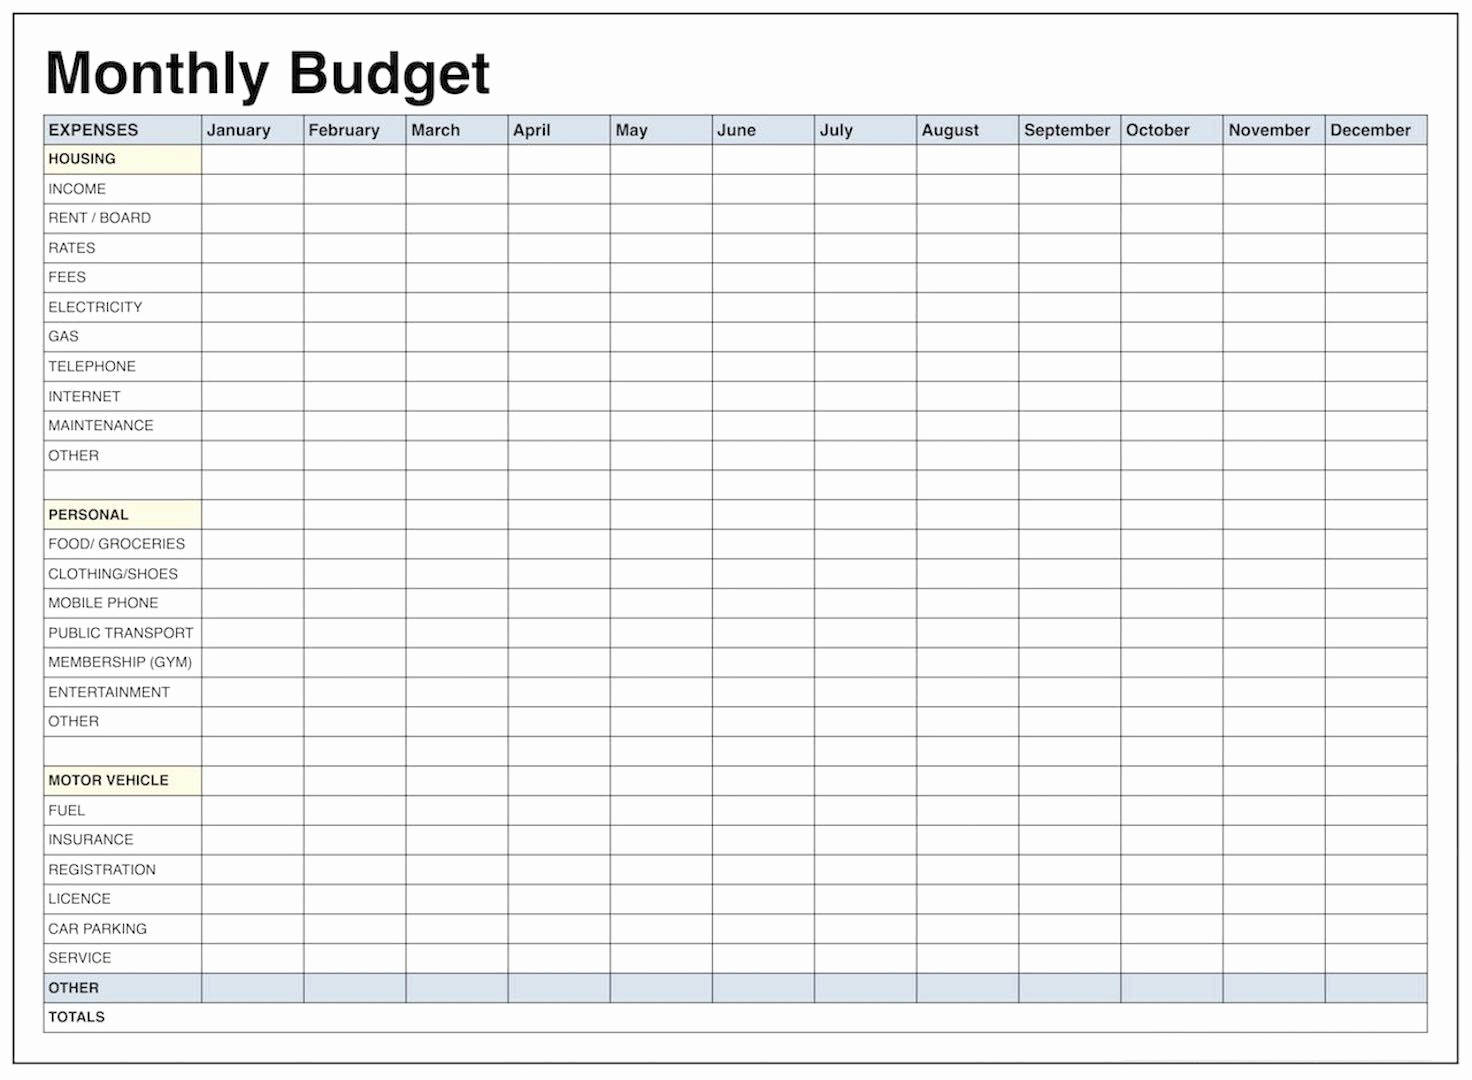 Monthly Budget Spreadsheet Template Elegant Blank Monthly Bud Template Pdf